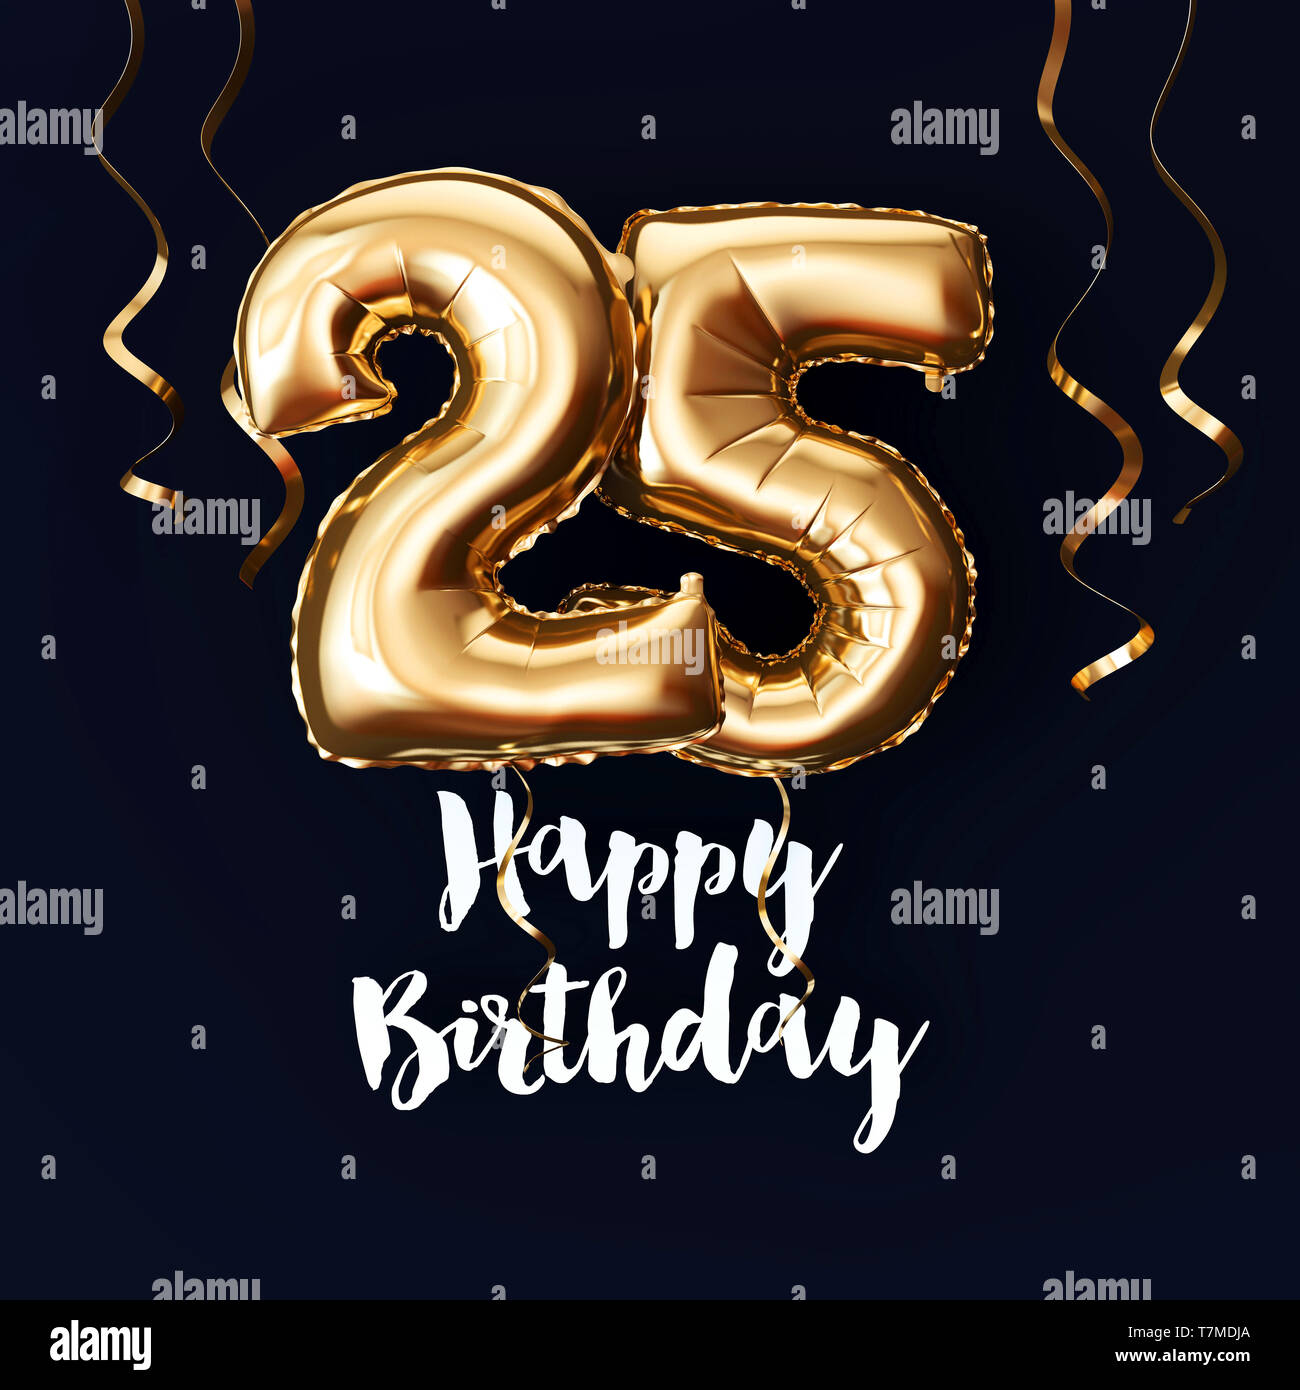 Happy 25th Birthday Gold Foil Balloon Background With Ribbons 3d Render Stock Photo Alamy